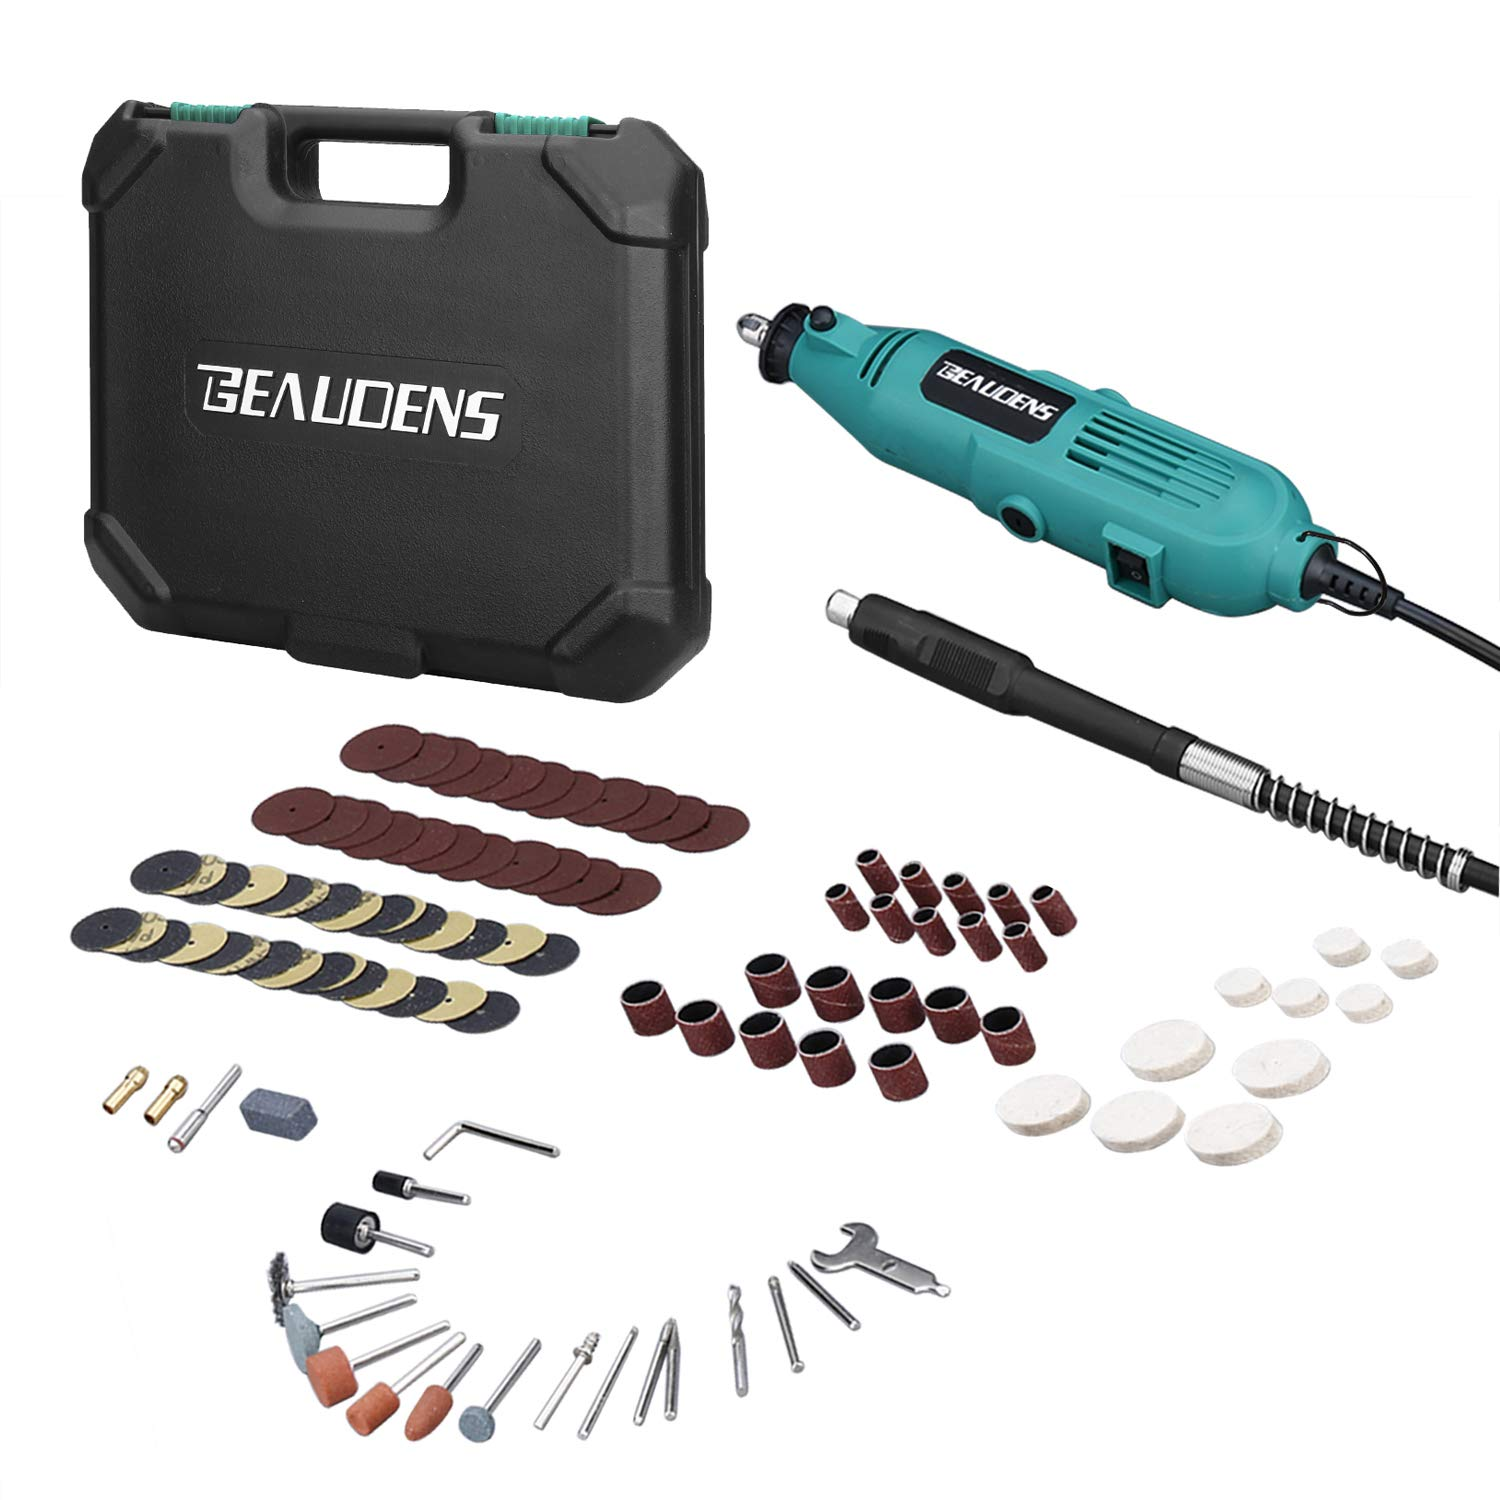 BEAUDENS Rotary Tool Kit with Flex Shaft, 100 Multifunctional Accessories, 6 Adjustable Speed, Solid Carrying Case and 2 Year Warranty for DIY Professionals